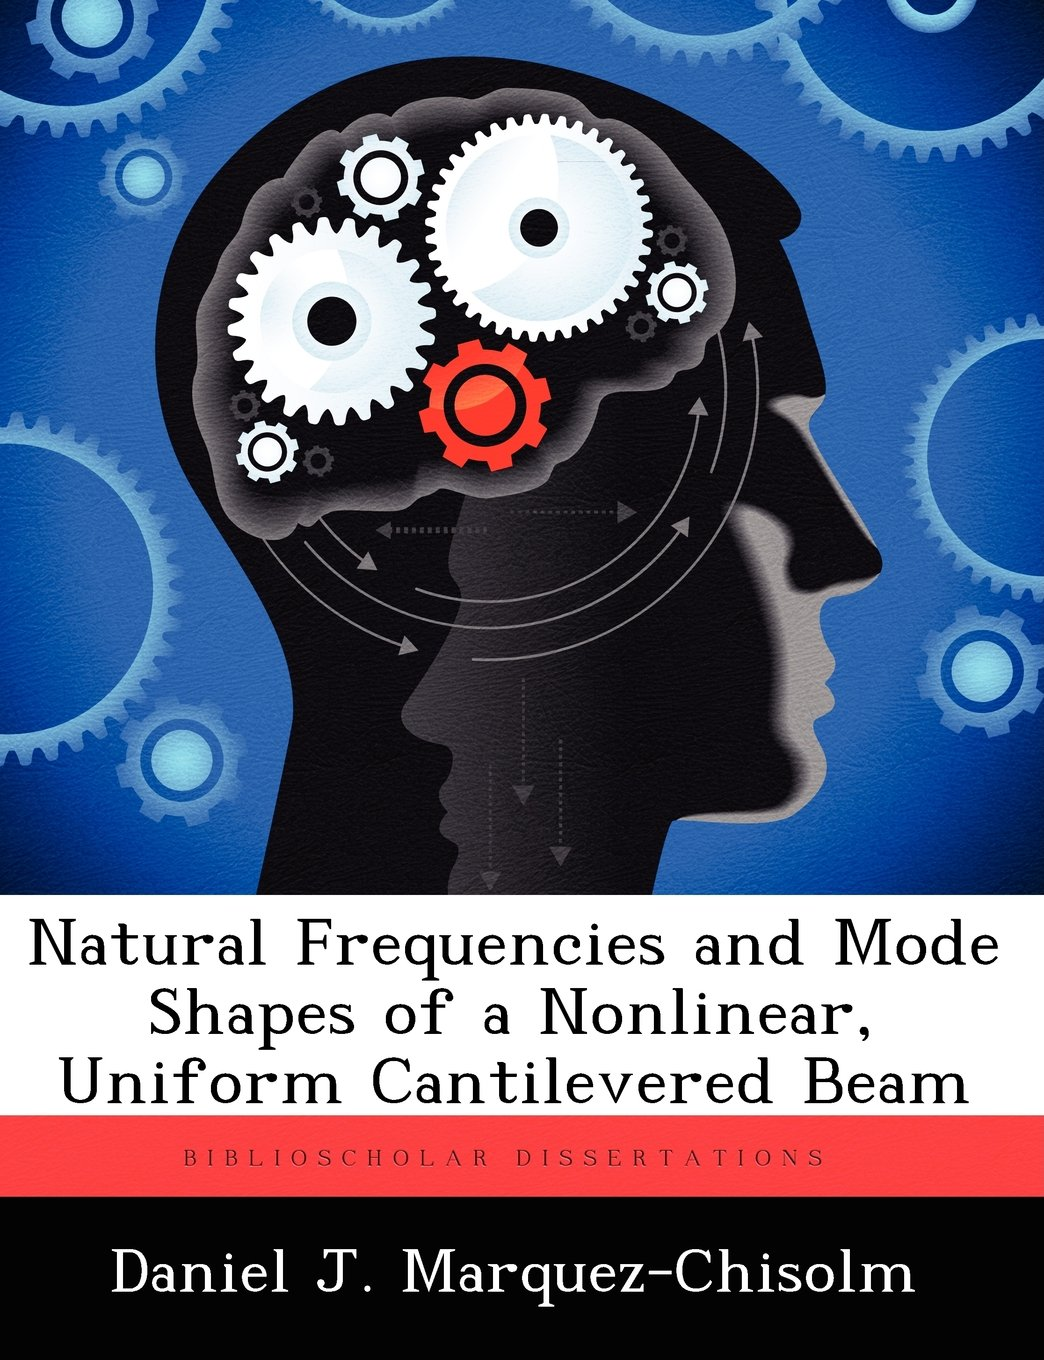 Natural Frequencies and Mode Shapes of a Nonlinear, Uniform Cantilevered  Beam: Daniel J. Marquez-Chisolm: 9781249600312: Amazon.com: Books